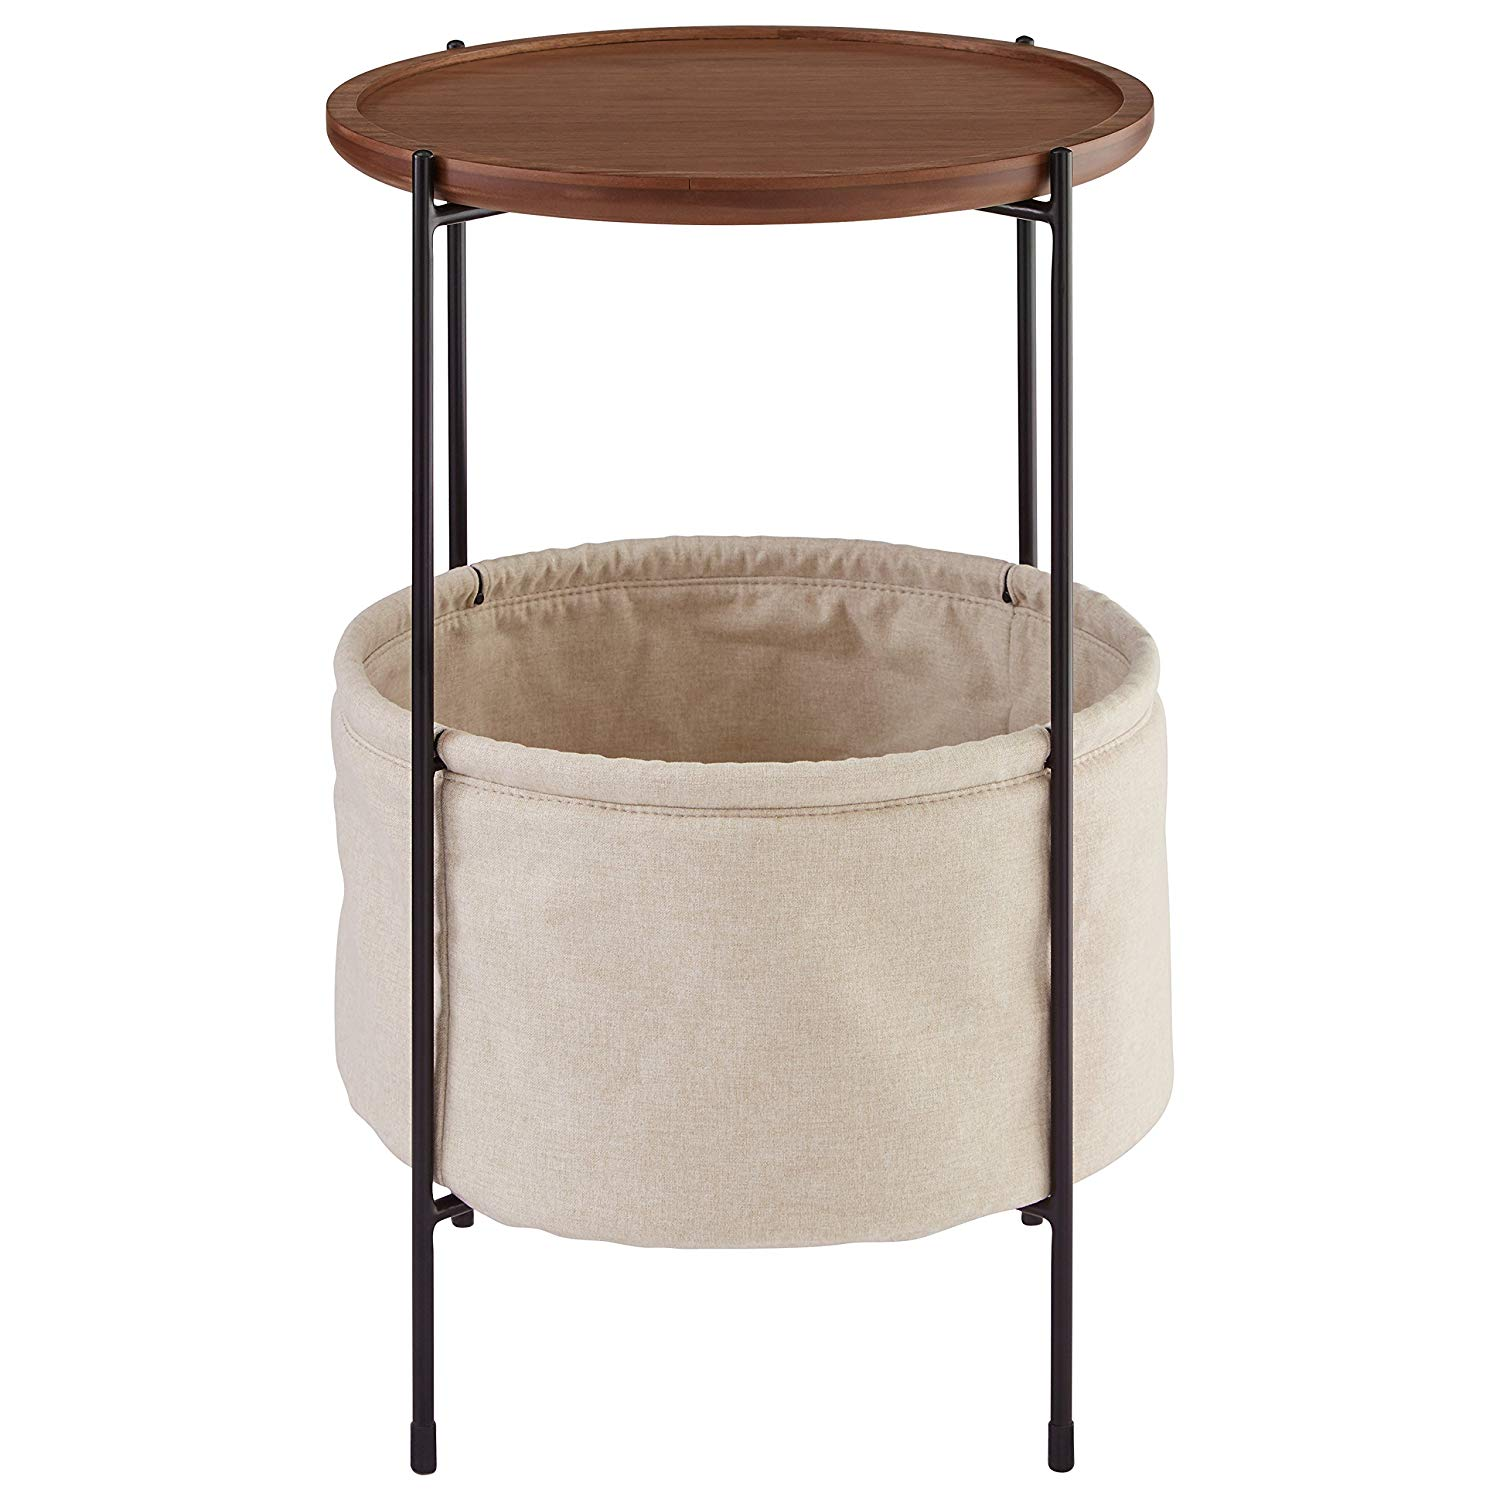 rivet meeks round storage basket side table walnut and wire accent cream fabric kitchen dining all modern hardwood wood metal coffee office end red cloth counter height with bench